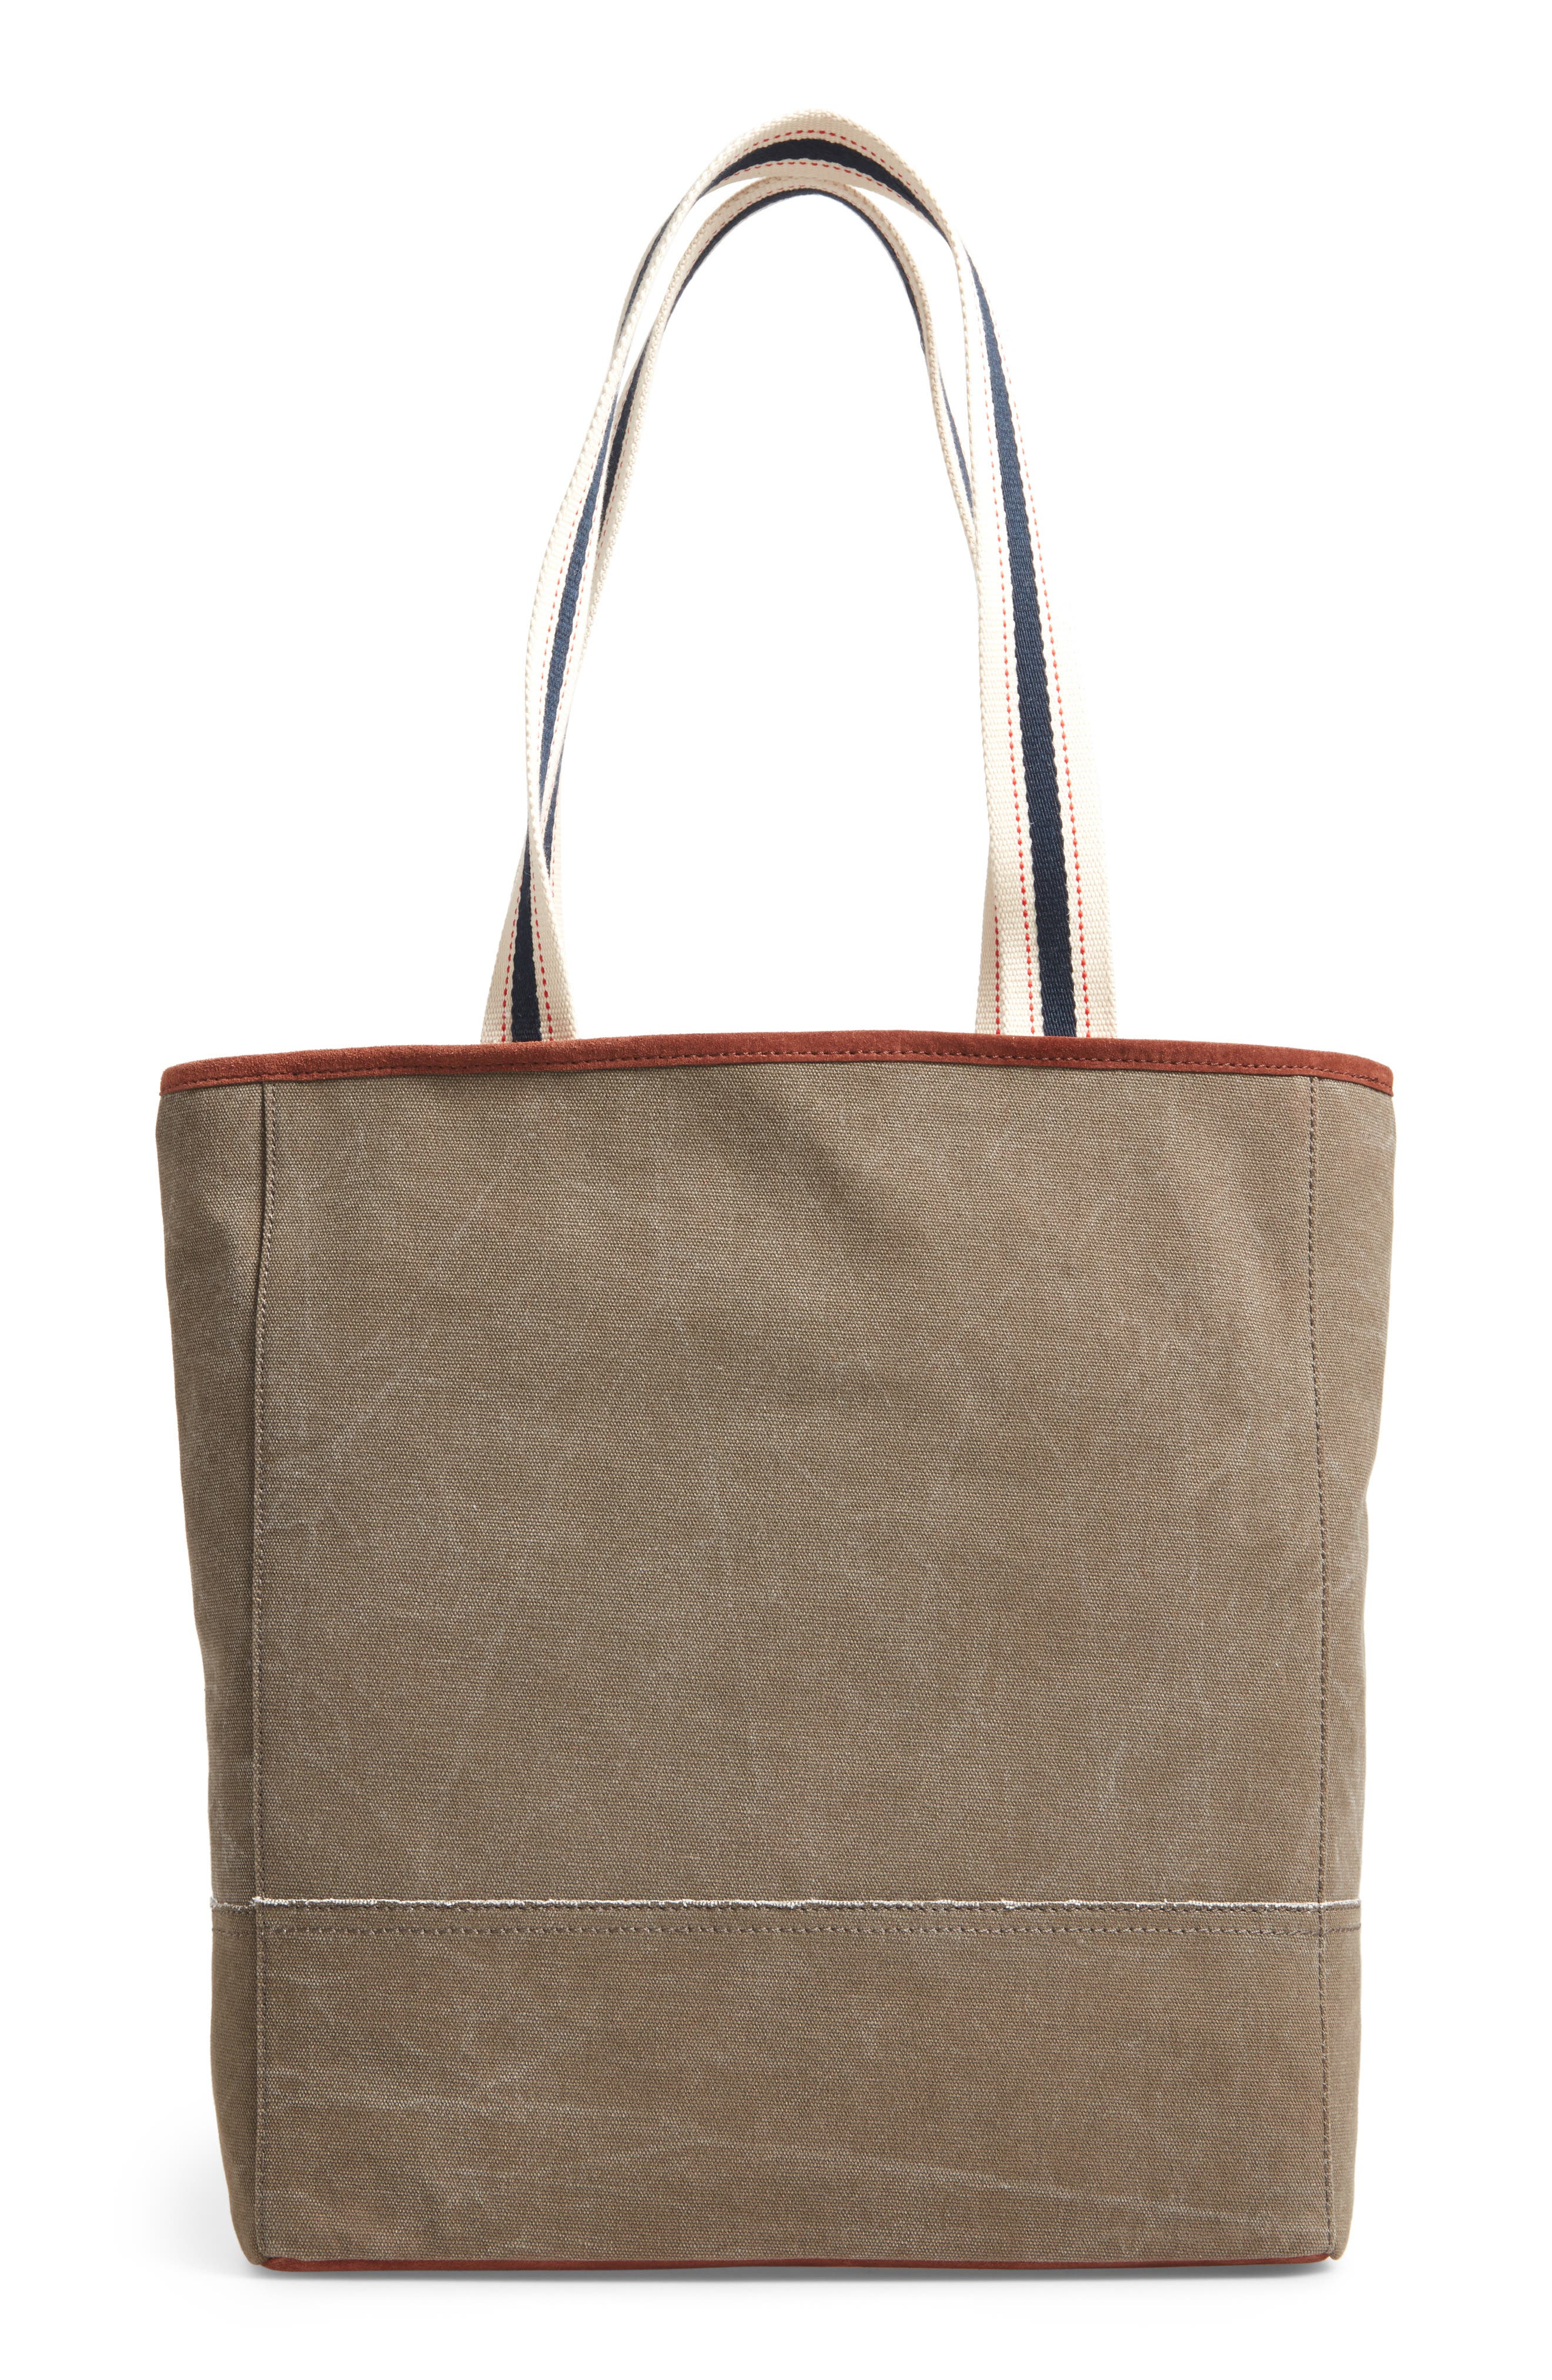 Dakin Canvas & Leather Tote,                             Alternate thumbnail 3, color,                             200